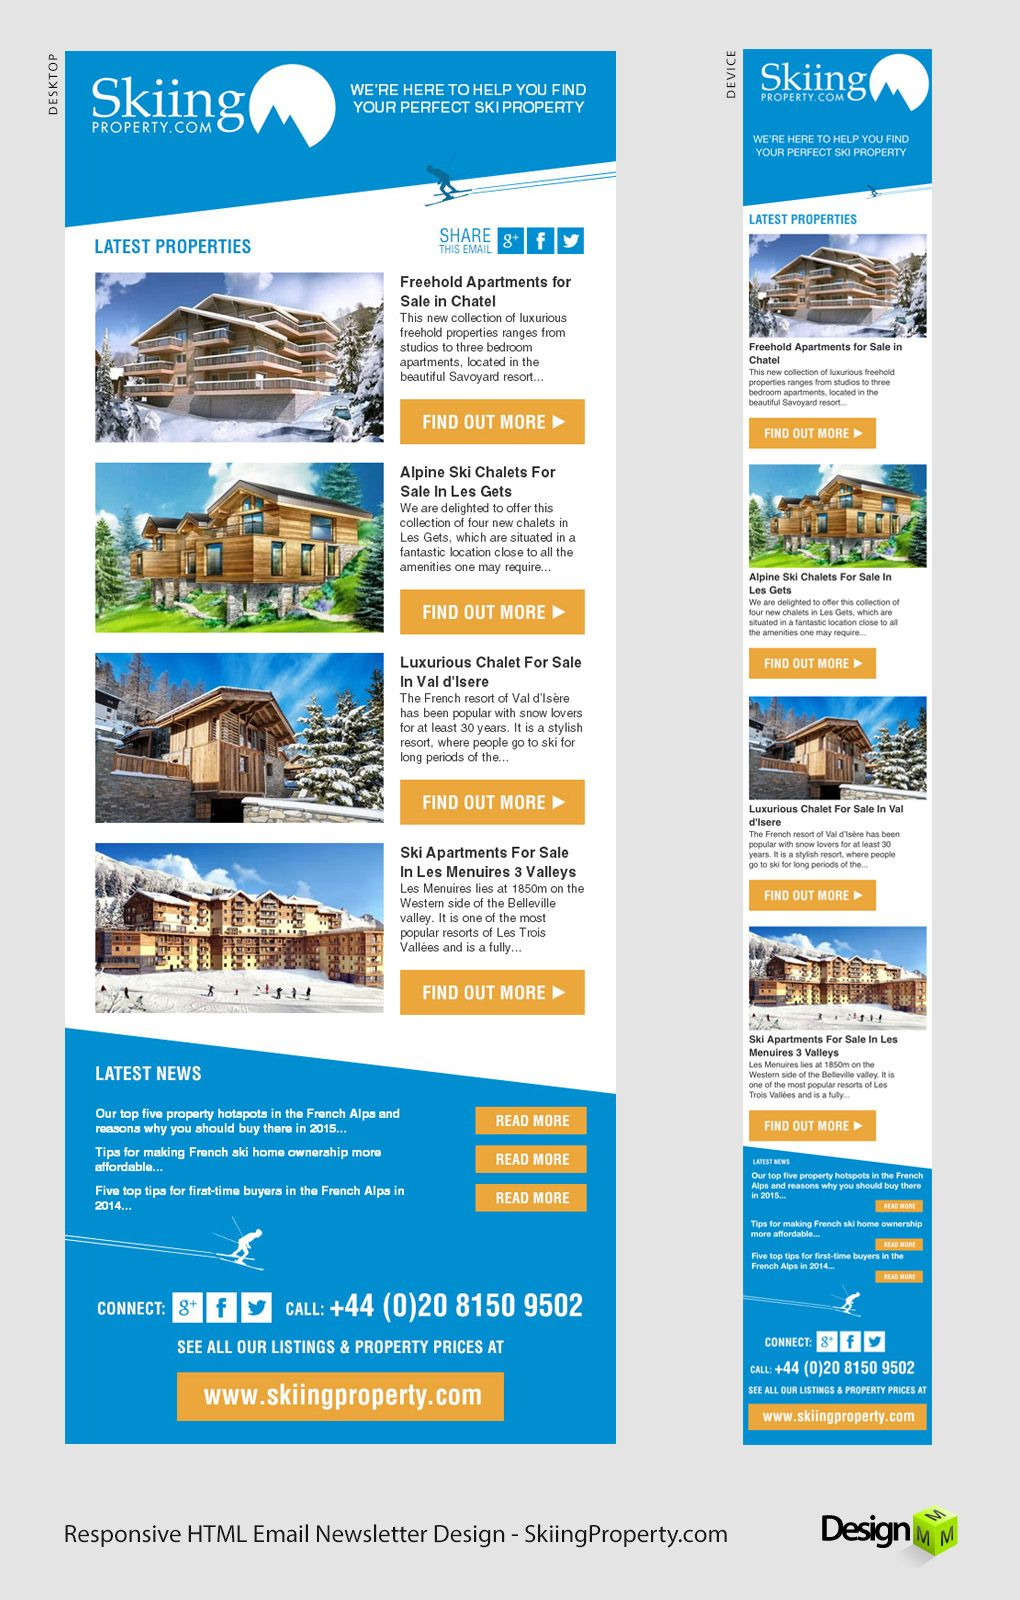 A Responsive Html Email Newsletter Designed For Skiing Property